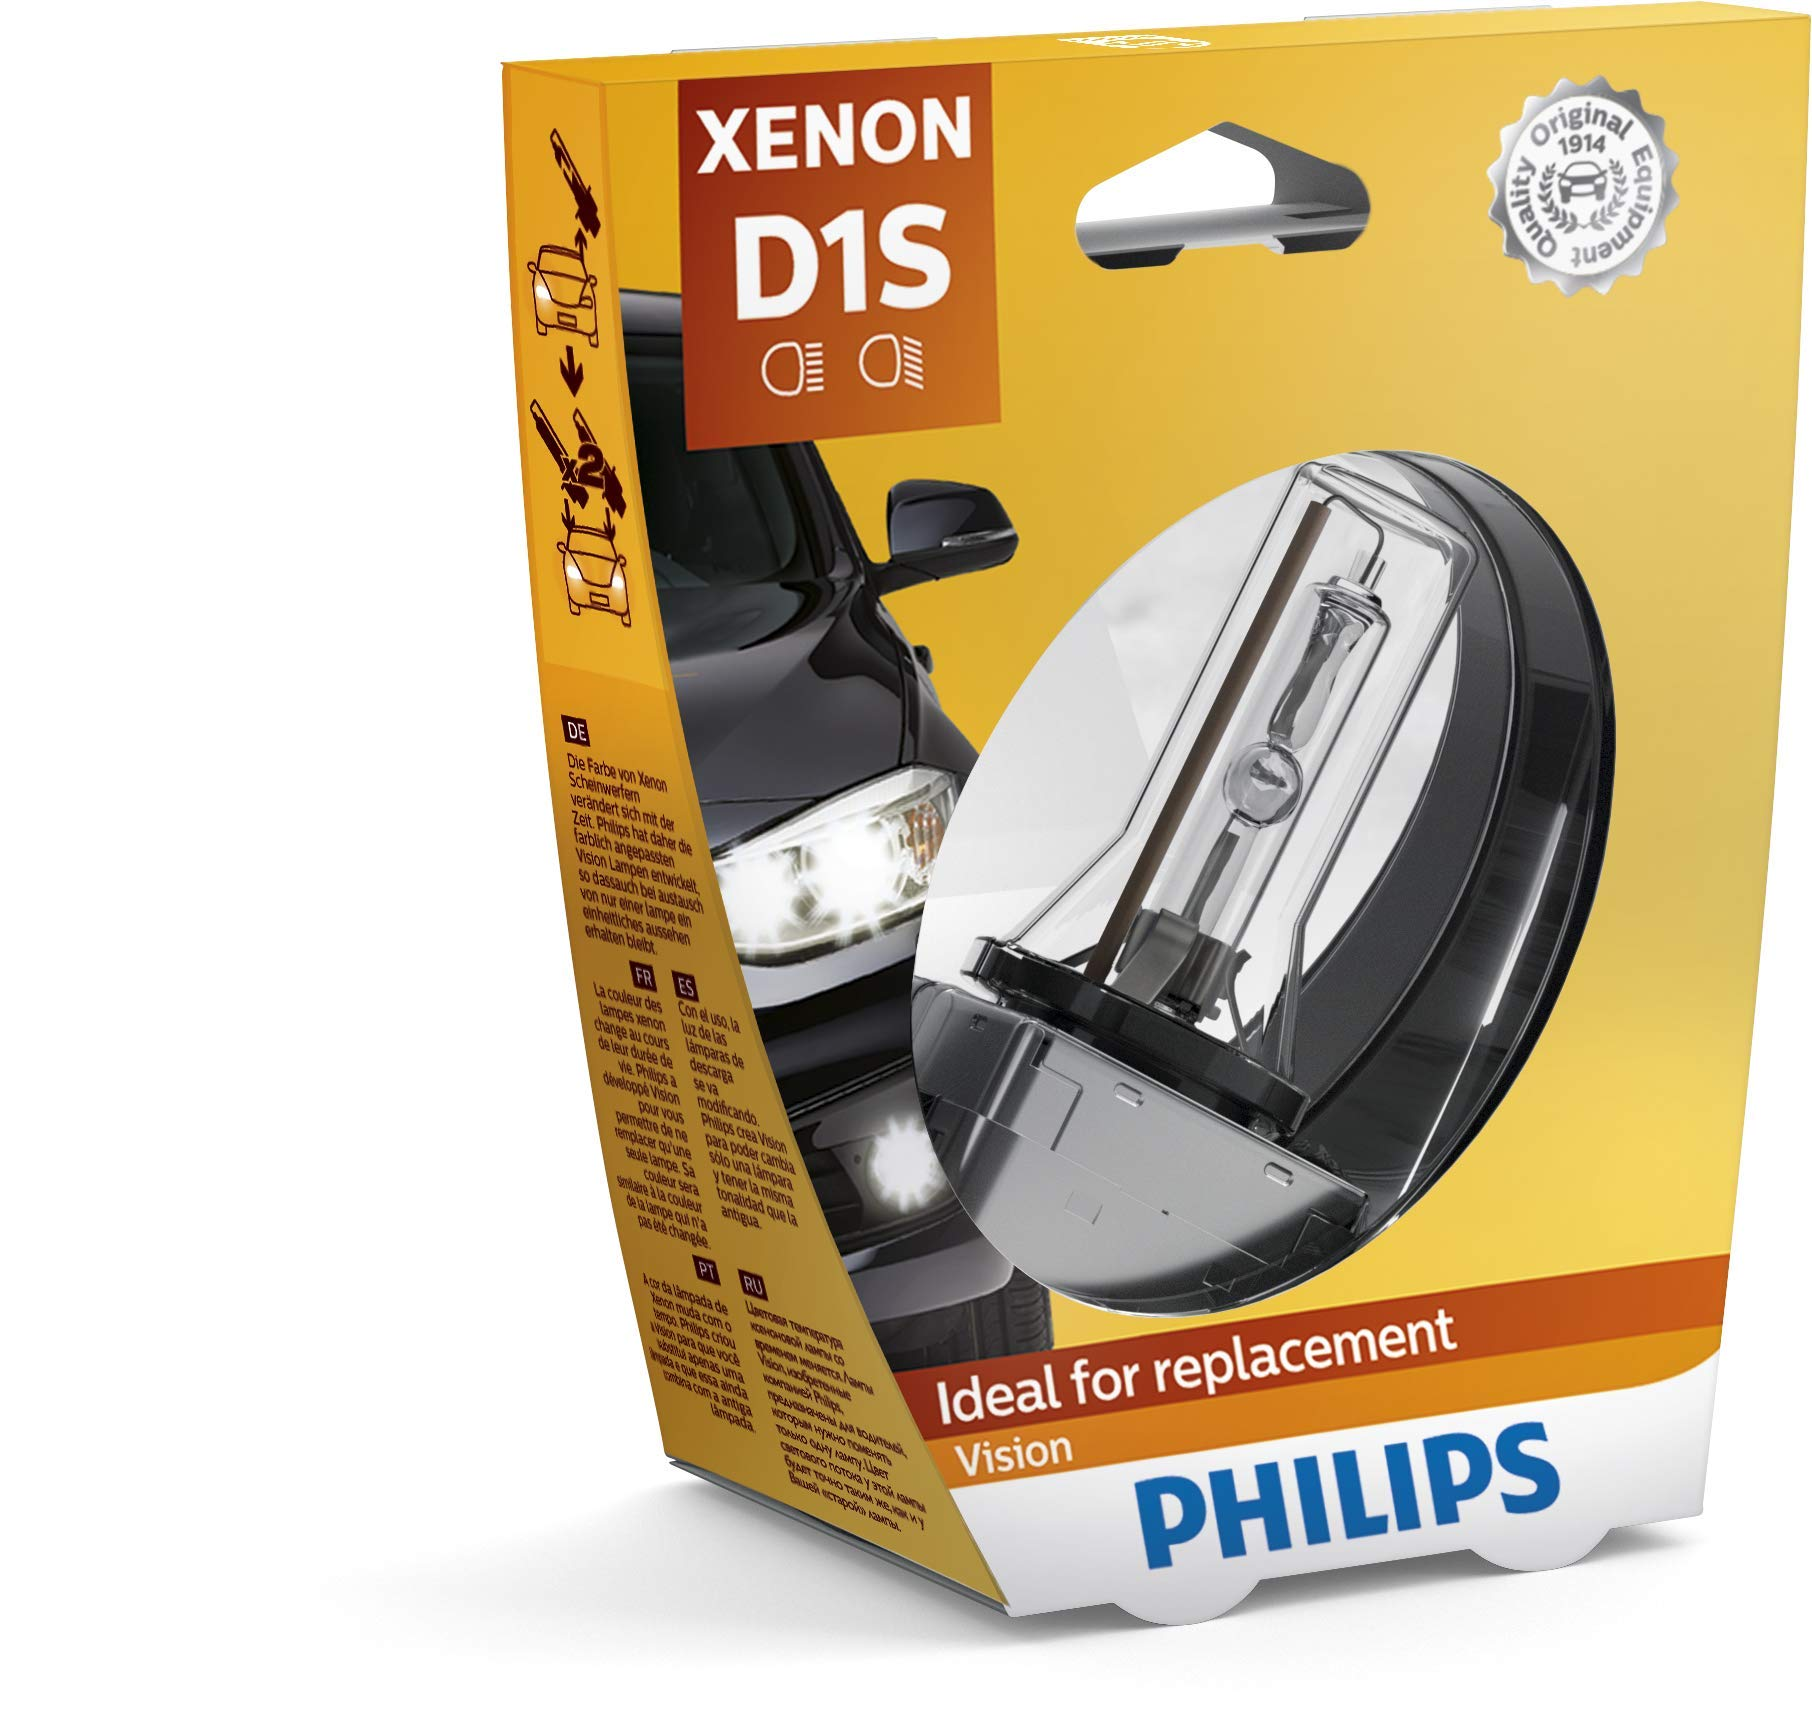 Philips 85415VIS1 Xenon Vision D1S, 1-er Blister von Philips automotive lighting